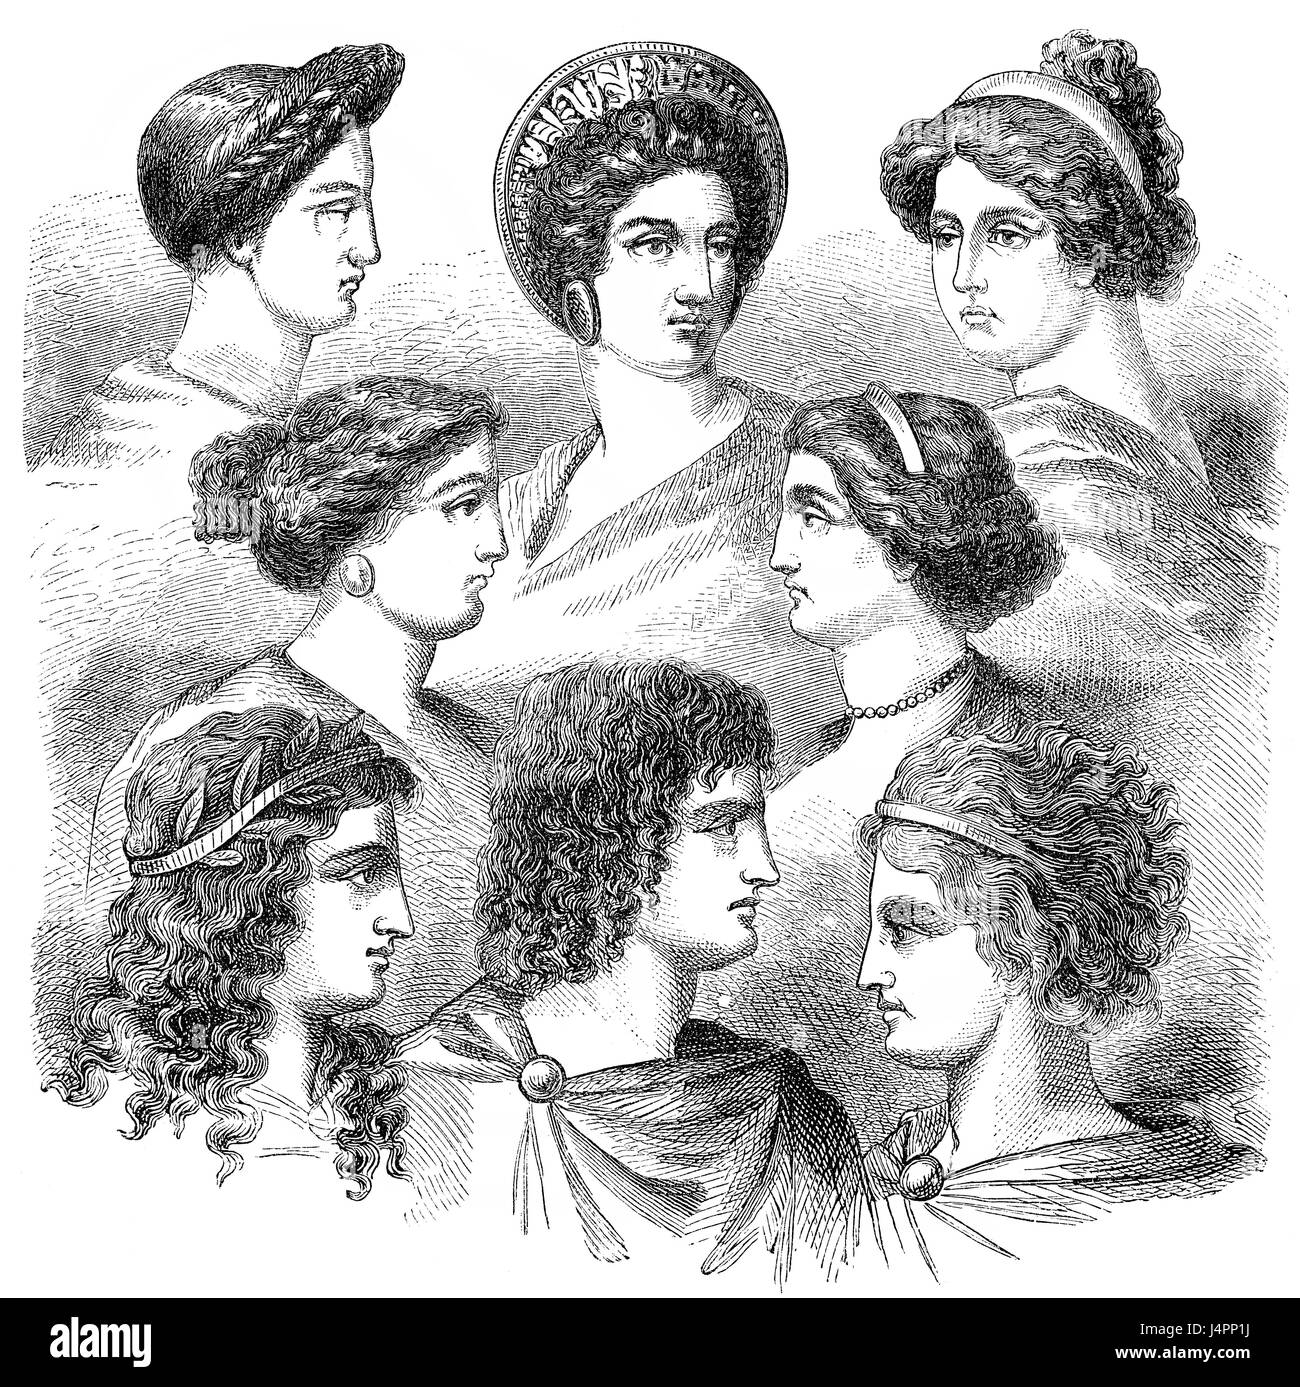 Traditional hairstyles in ancient Greece Stock Photo  140641806 - Alamy f50446d1060